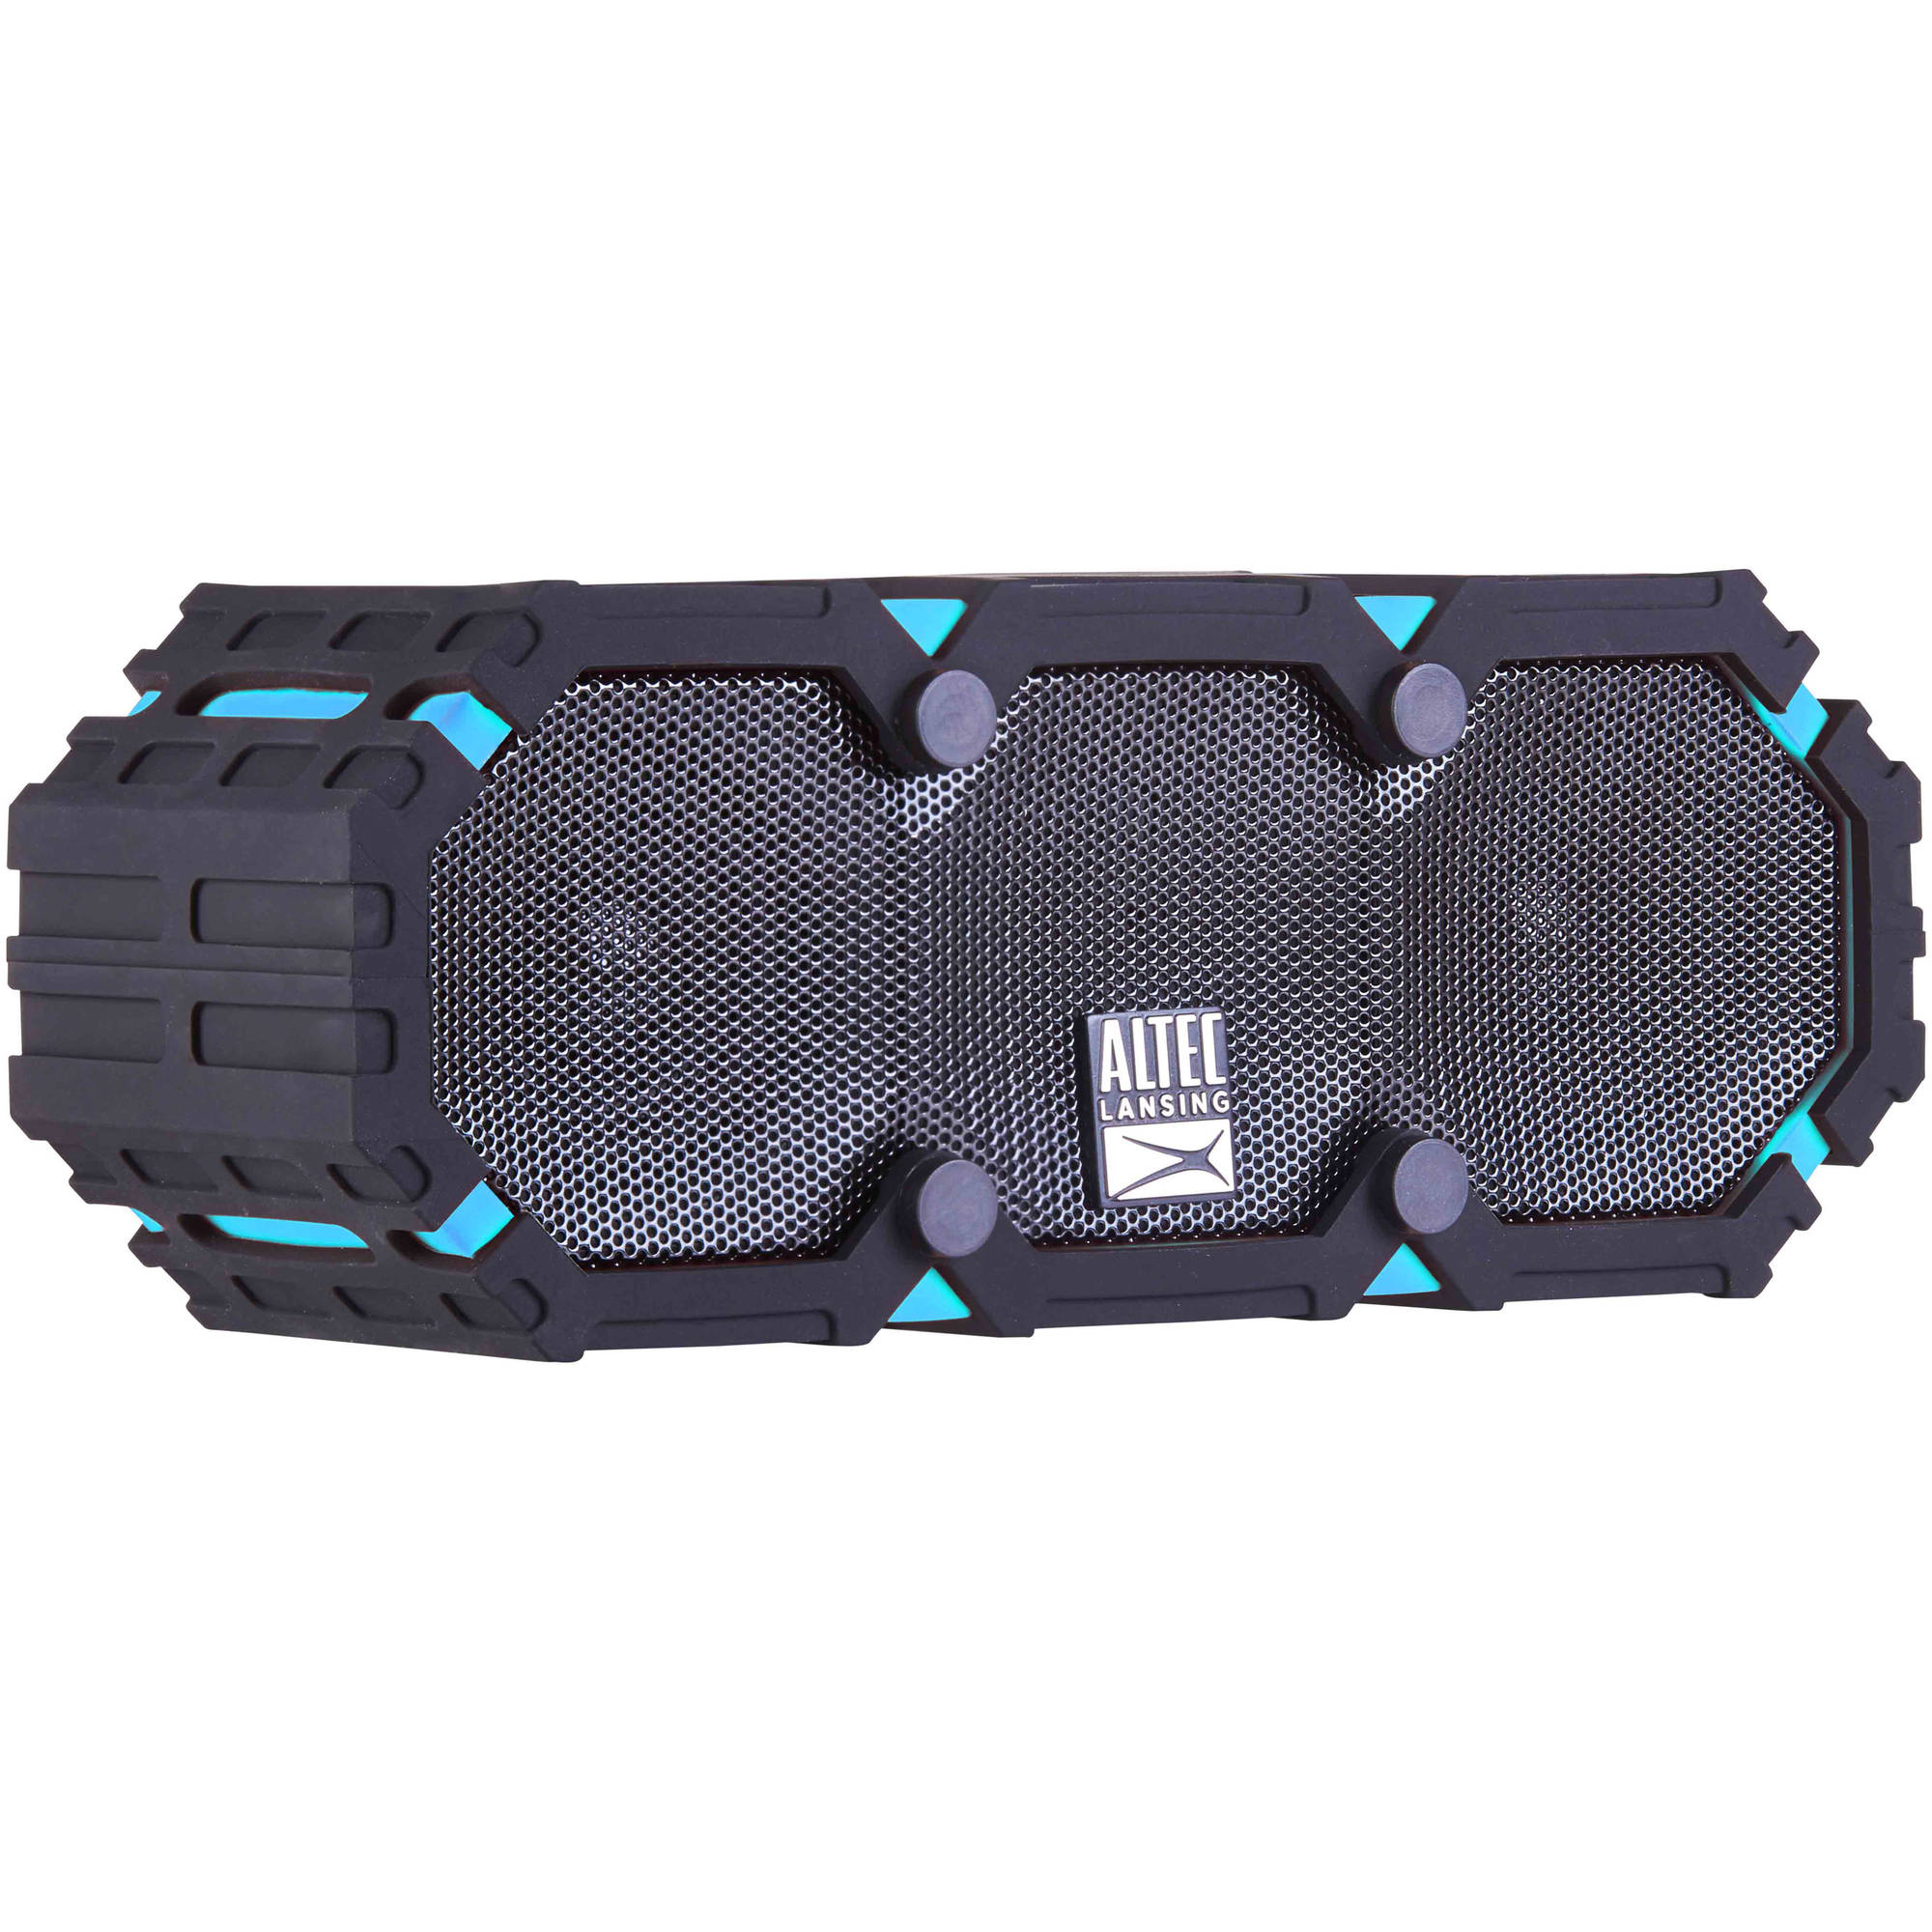 Altec Lansing iMW475 Mini Life Jacket Bluetooth Wireless Speaker by Sakar International